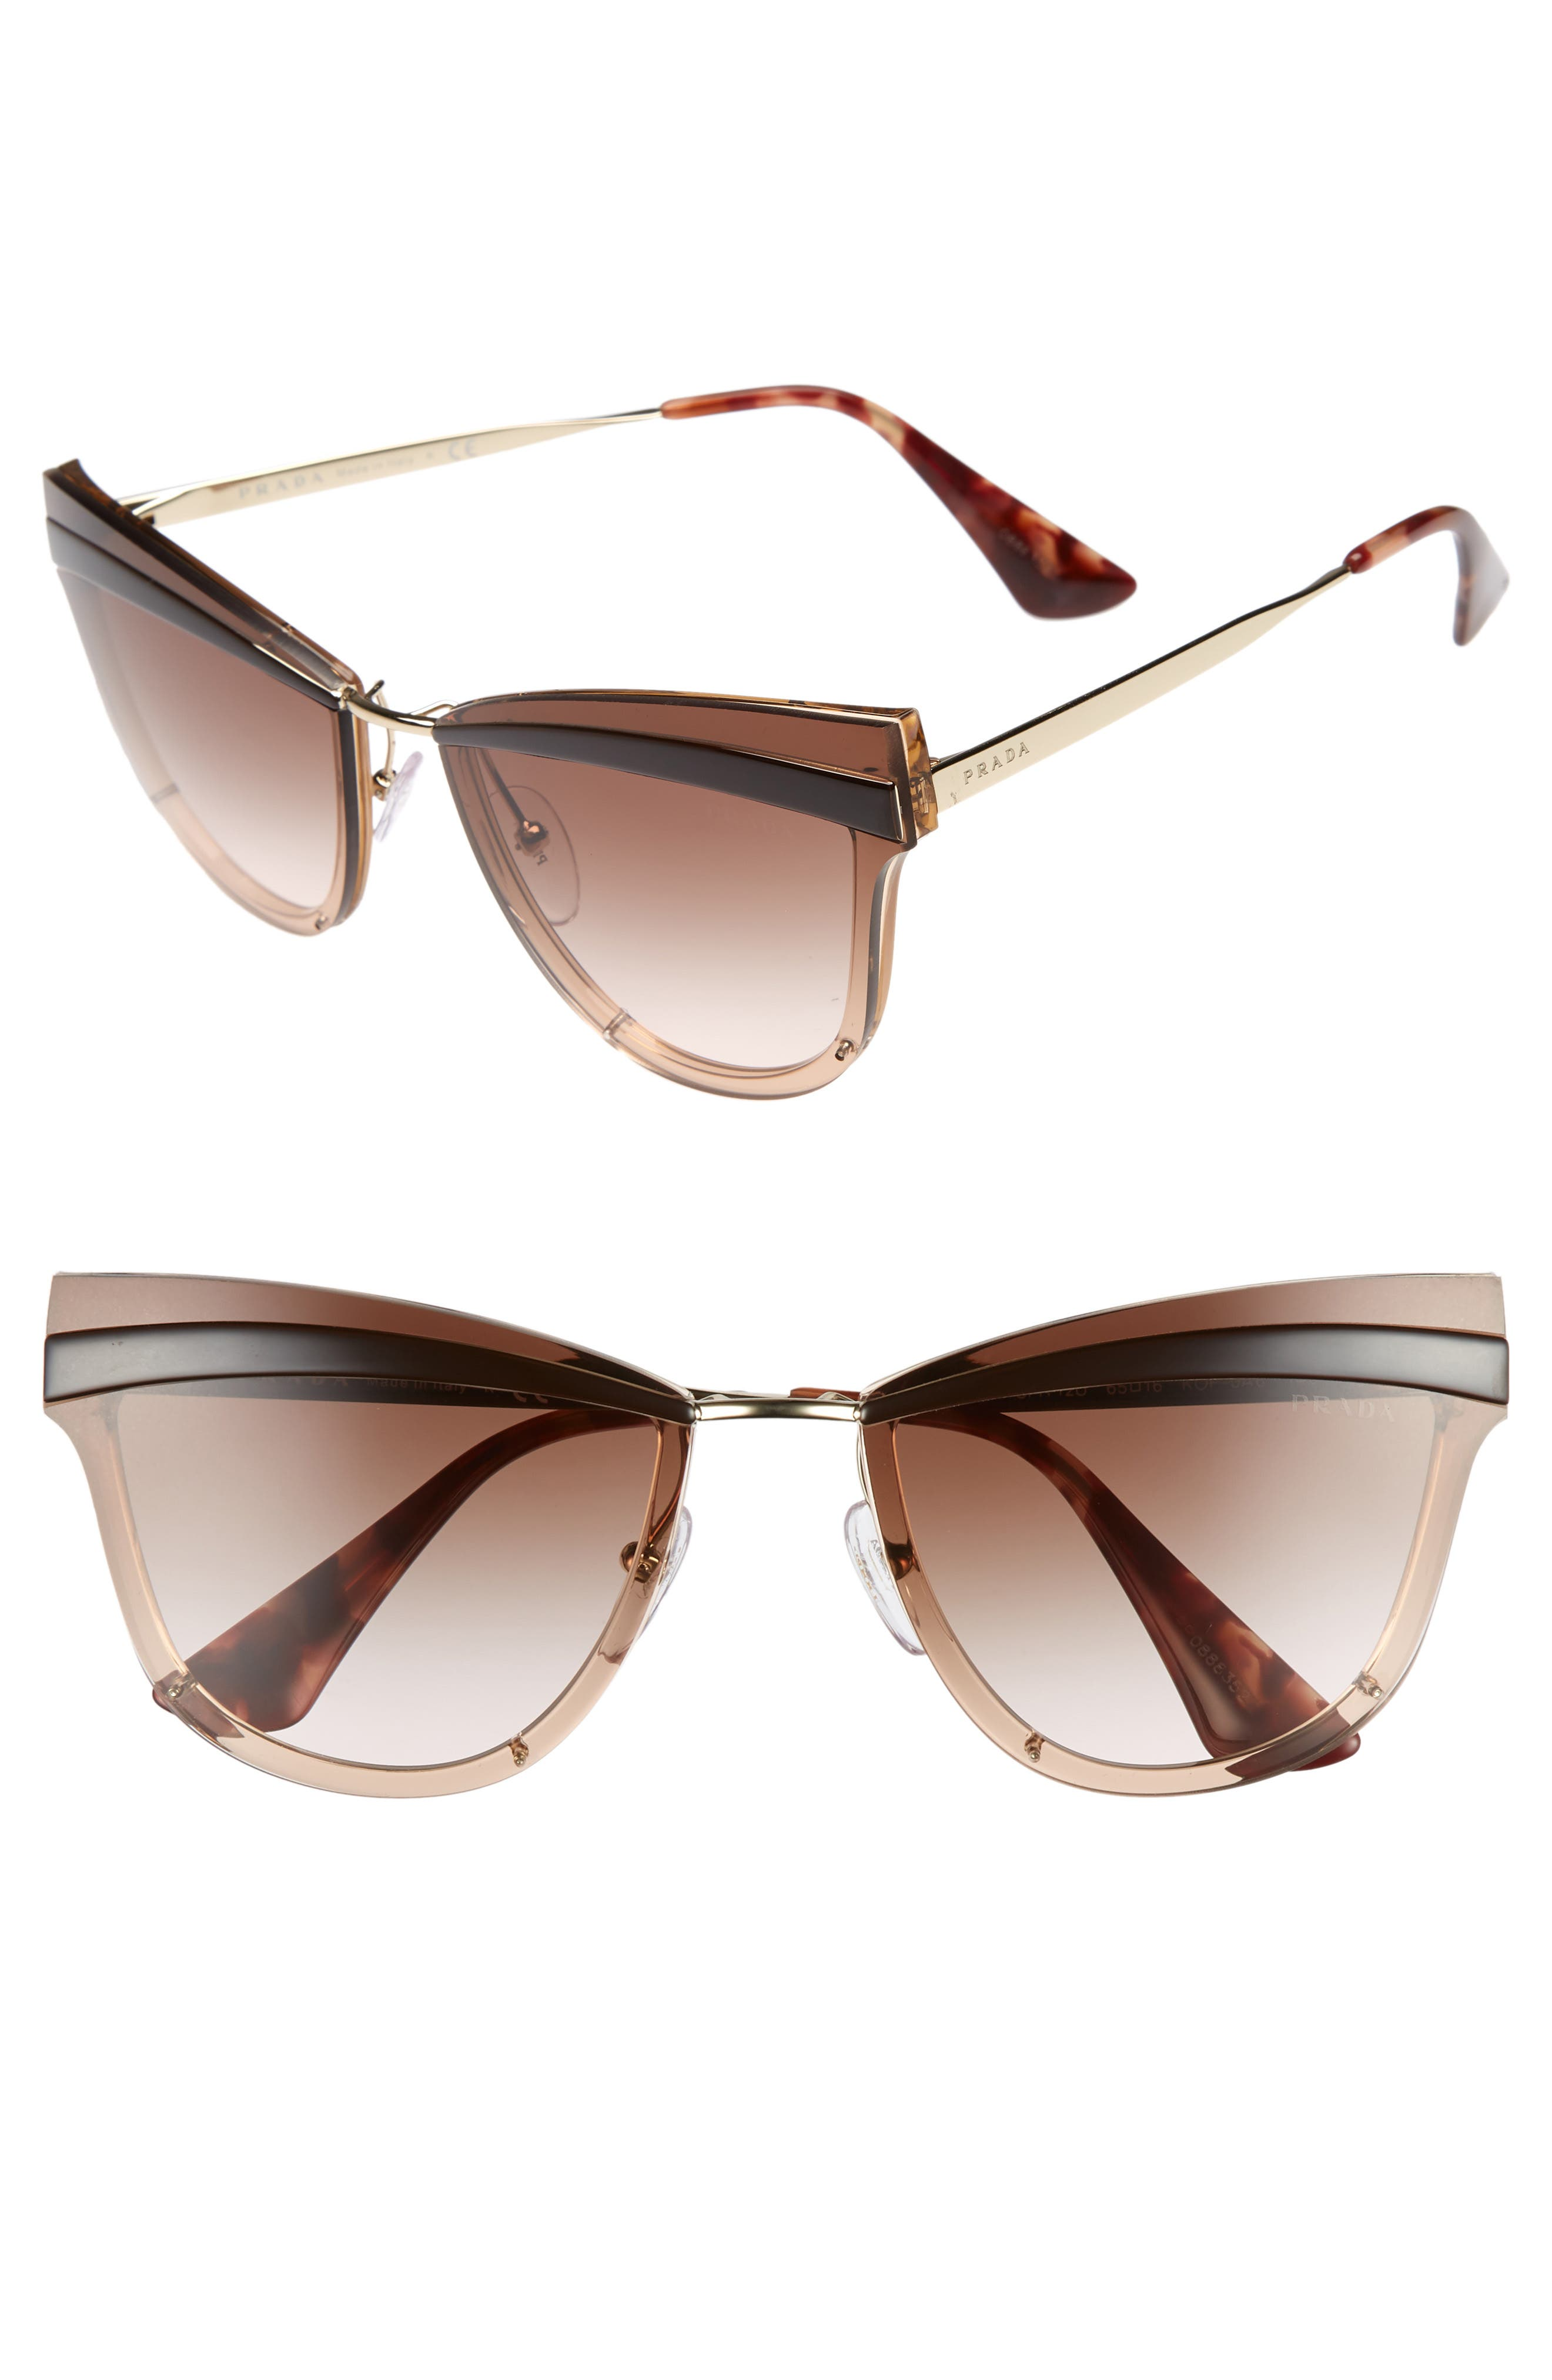 Cinma Evolution 65mm Cat Eye Sunglasses,                         Main,                         color, Pink/ Brown Gradient